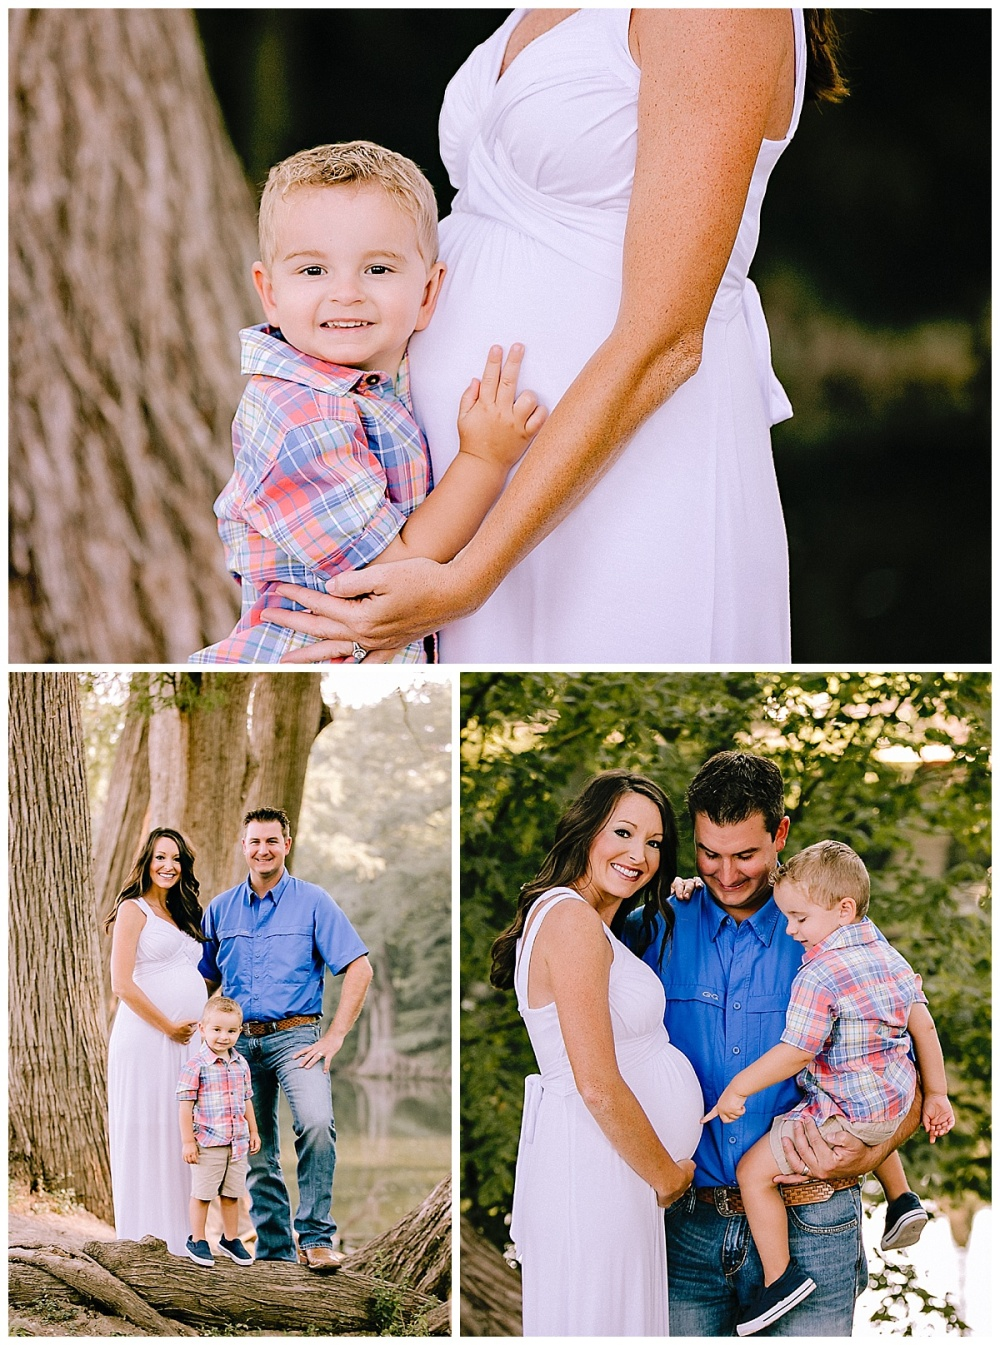 Carly-Barton-Photography-Maternity-Photos-Cypress-Bend-Park-New-Braunfels-Jonas-Family-Texas_0003.jpg